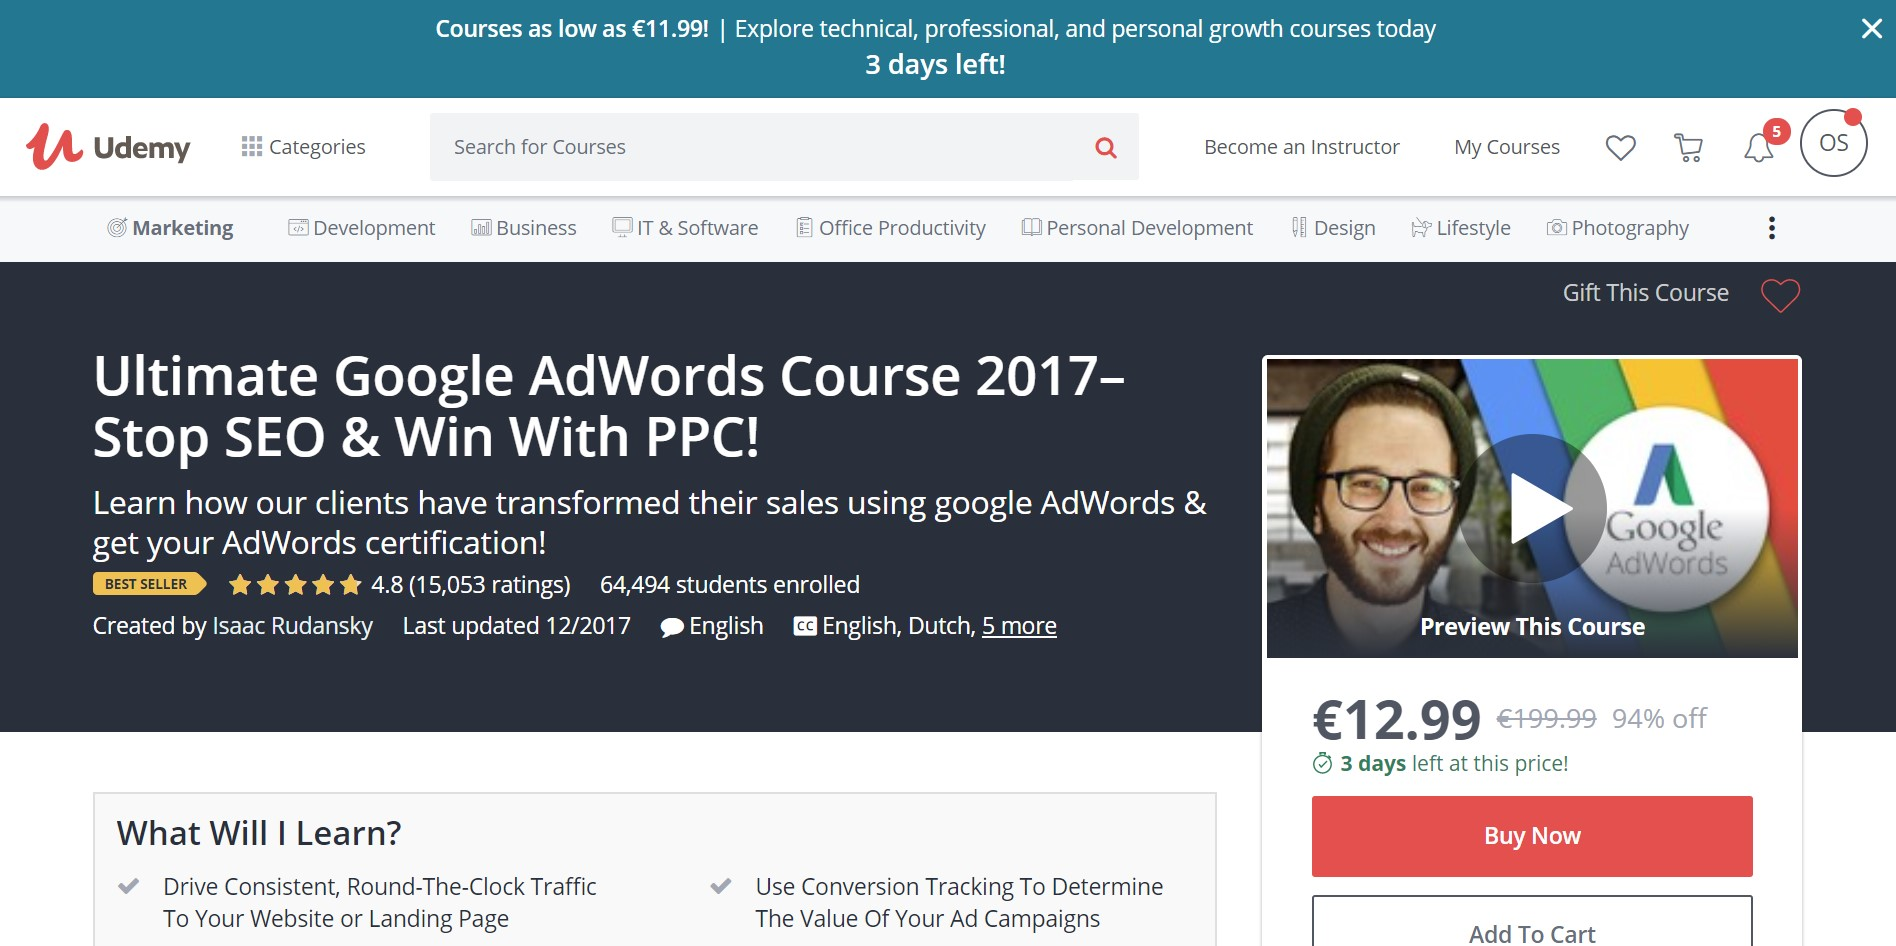 4. Udemy Course: The Ultimate Google AdWords Course 2017